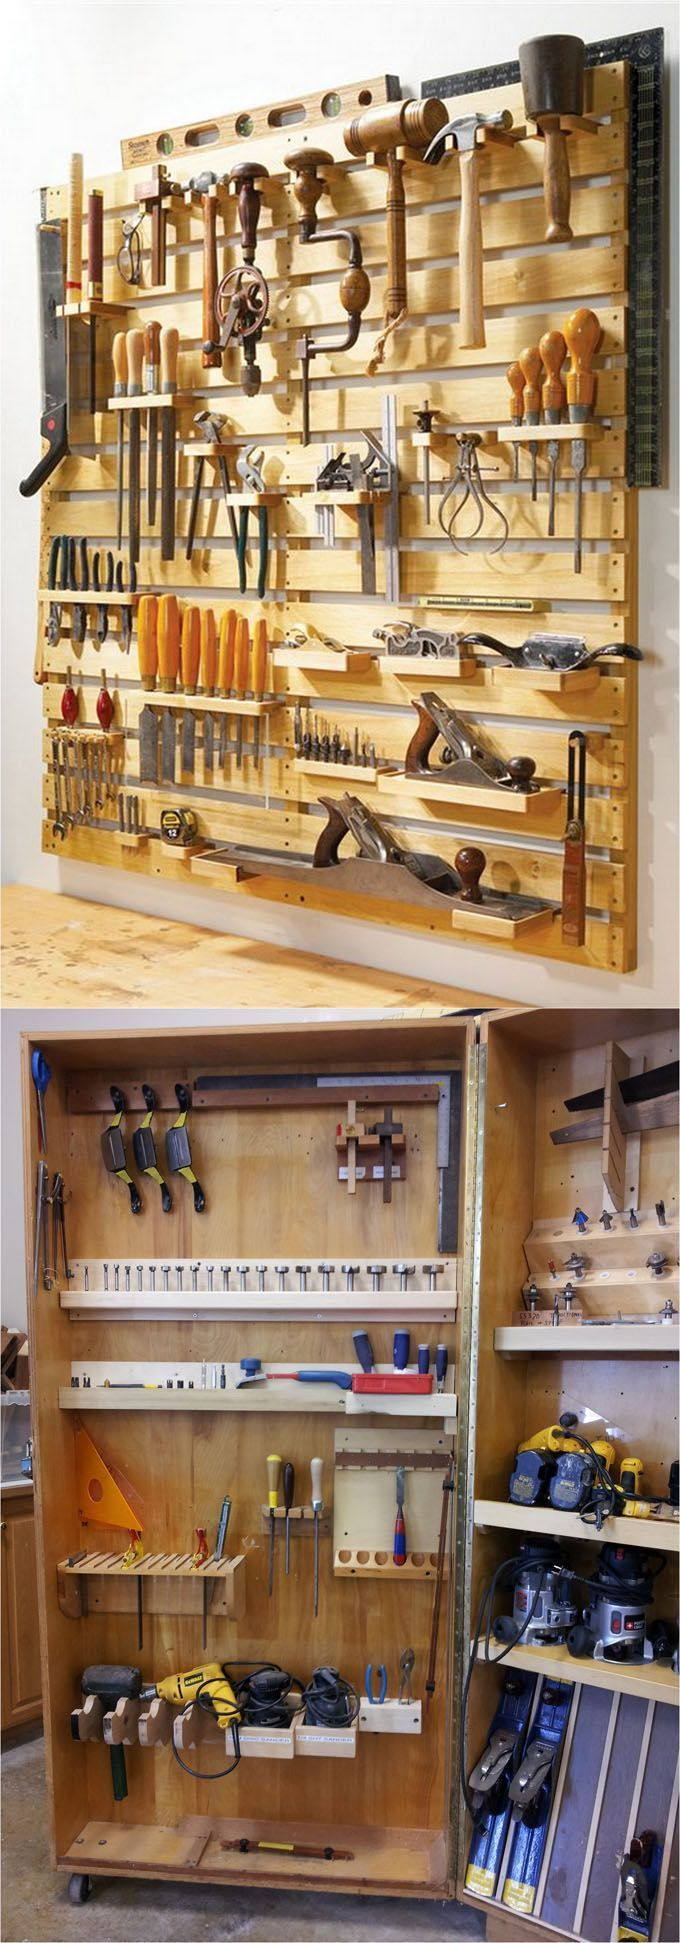 21 inspiring workshop and craft room ideas for diy on inspiring diy garage storage design ideas on a budget to maximize your garage id=29087